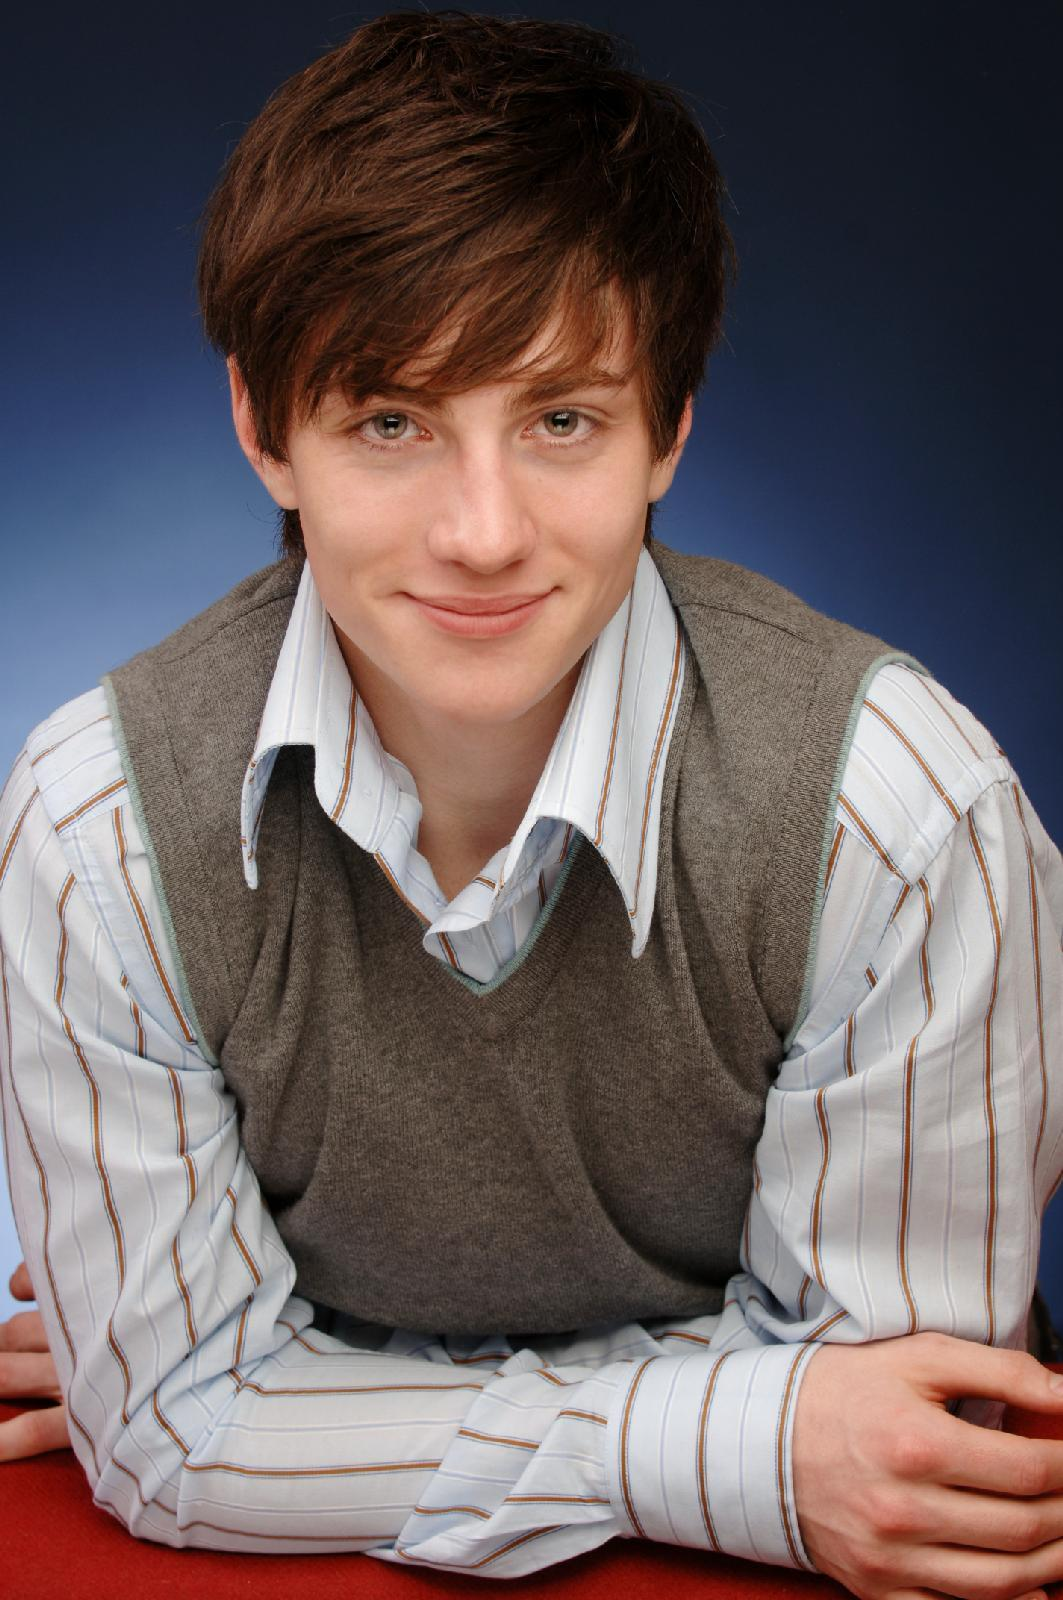 Aaron Johnson picture wallpaper